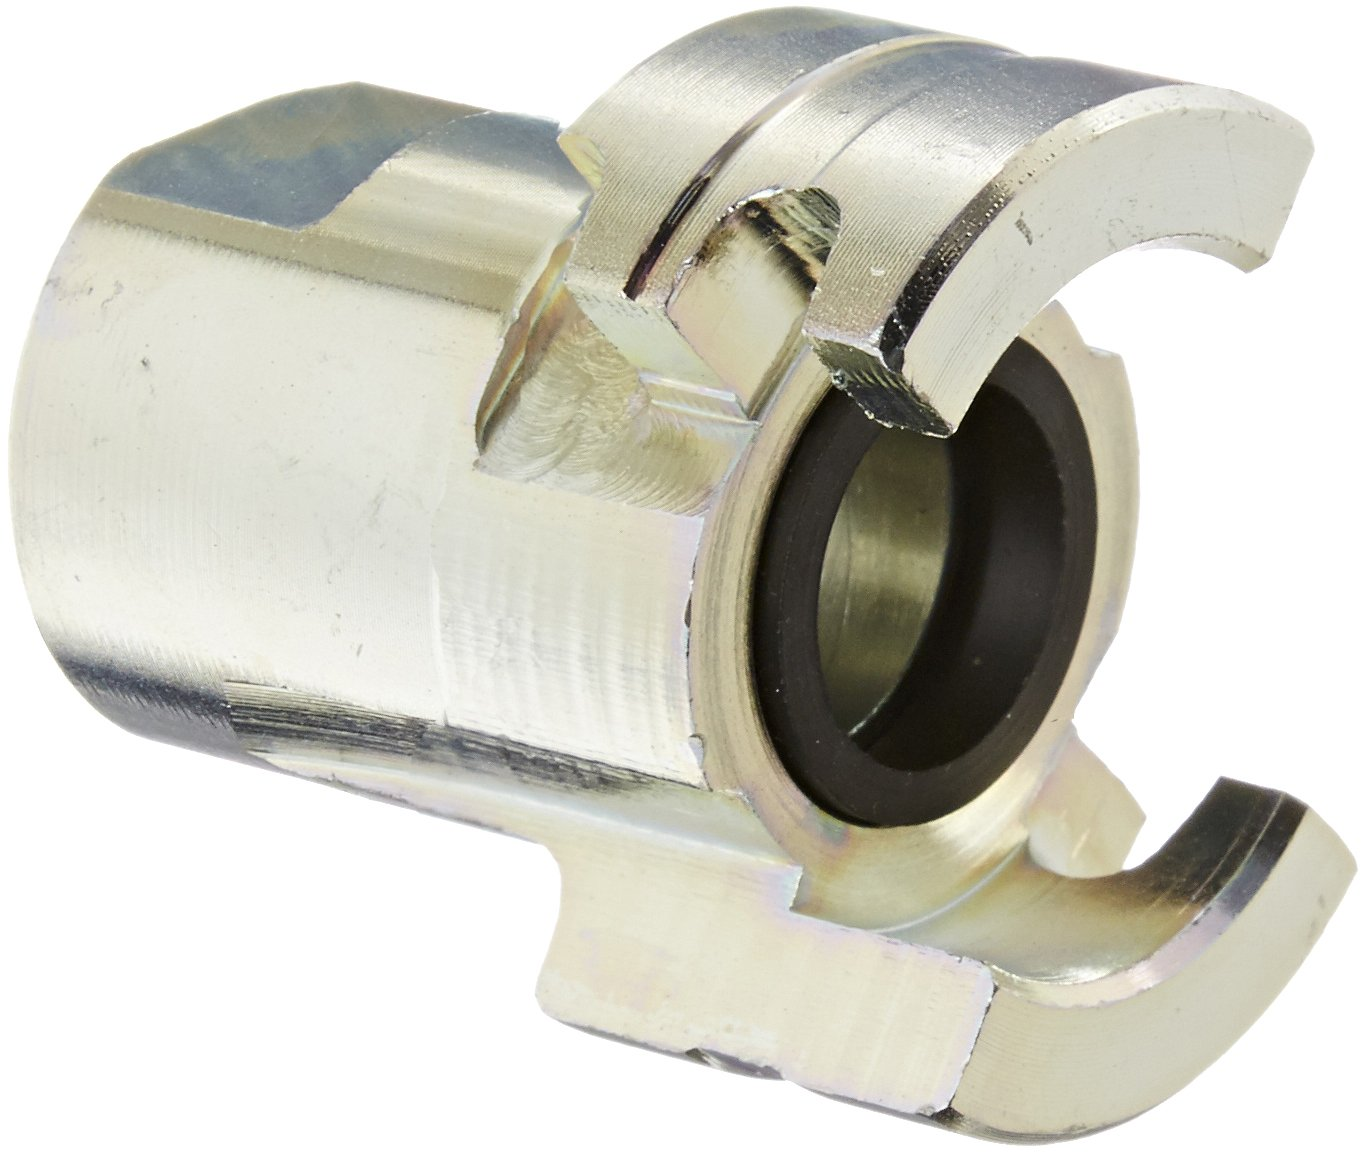 Quick-Acting Coupler Dixon Valve PF6 Plated Steel Dual Lock Air Fitting 1//2 Coupling x 3//8 NPT Female Thread 1//2 Coupling x 3//8 NPT Female Thread Dixon Valve /& Coupling